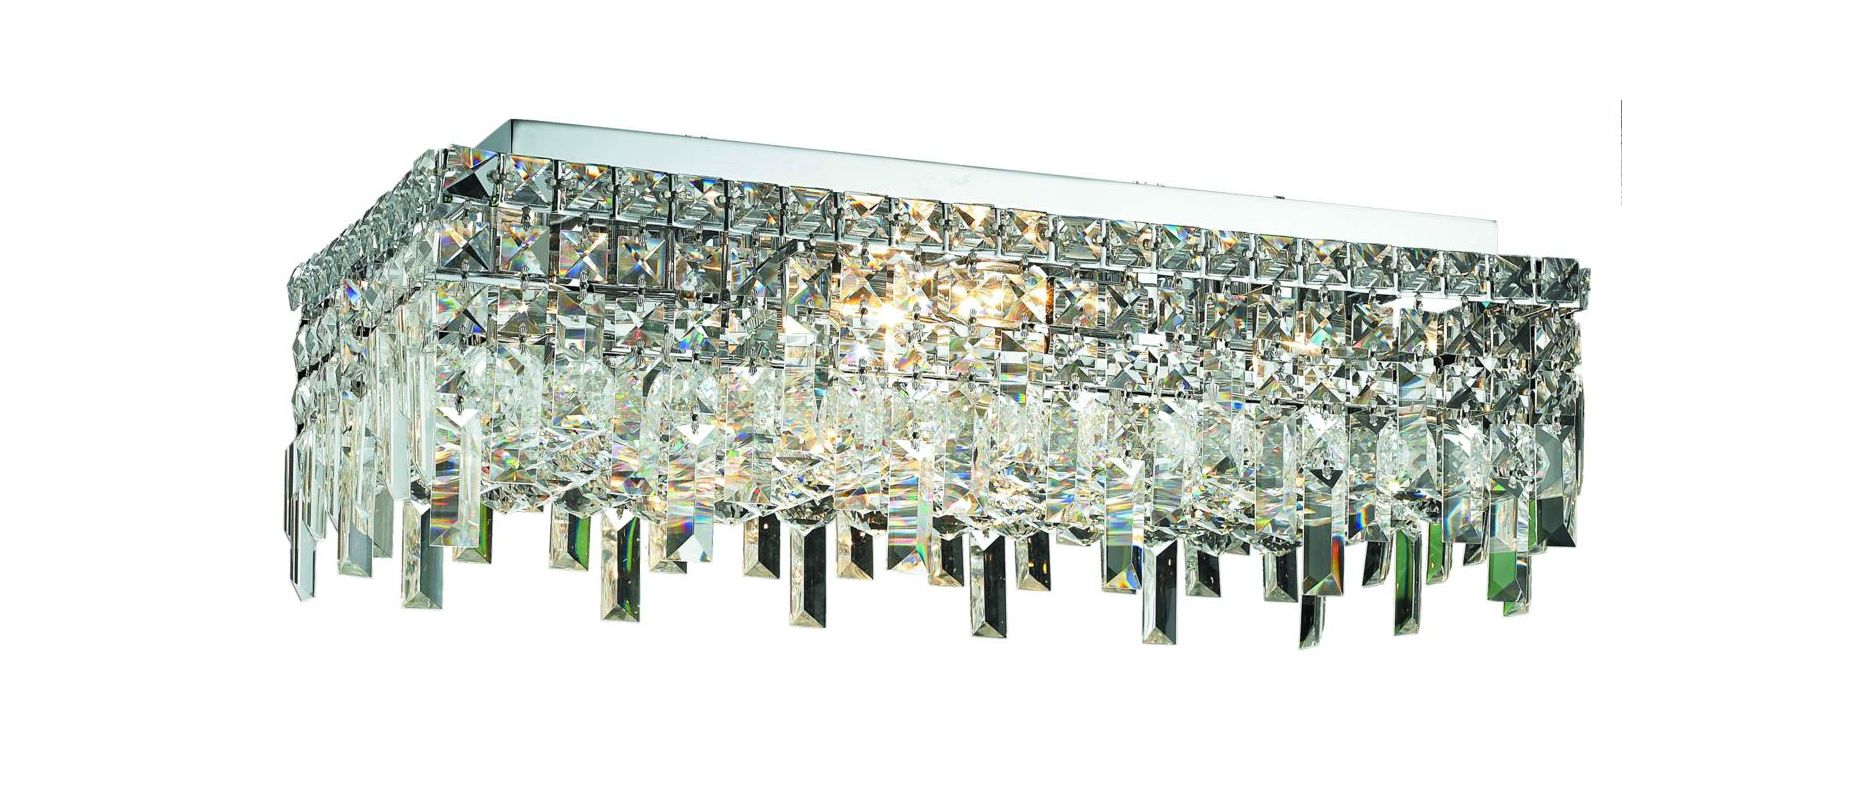 "Elegant Lighting 2035F24C Maxim 6-Light Single-Tier Flush Mount Sale $1170.00 ITEM: bci2013704 ID#:2035F24C/RC UPC: 848145042659 Elegant Lighting 2035F24C Maxim 6-Light, Single-Tier Flush Mount Crystal Chandelier, Finished in Chrome with Clear Crystals Elegant Lighting 2035F24C Features: Base Finish: Chrome with Clear Crystal Choose from Royal Cut, Elegant Cut, Swarovski Spectra or Swarovski Elements Crystal Types: Royal Cut- a combination of high quality, lead-free, machine cut and polished crystals, and full-lead machine-cut crystals, whose appearance rivals that of a more expensive chandelier crystal Elegant Cut- Elegant Cut Crystals consist of 30% high quality full-lead machine-cut crystal that is above industry standards. It possesses sharp faceting polished to a visual radiance Swarovski Spectra- Beautiful and reliable quality crystal by Swarovski Swarovski Elements- An exercise in technical perfection, Swarovski Elements crystal meets all standards of perfection. It is original, flawless and brilliant, possessing lead oxide in excess of 33%. Made in Austria, each facet is perfectly cut and polished by machine to maintain optical purity and consistency Uses (6) 60-Watt Candelabra Base Bulbs (not included) Hanging weight 43 lbs Product Dimensions: 7""H x 12""D x 24""W From the Elegant Lighting Maxim Collection Elegant Lighting, headquartered in Philadelphia, PA, is a premium designer of crystal lighting. Since its inception in the year 2000, Elegant Lighting has made innovative strides in crystal lighting design, that resulted in them becoming the fastest-growing crystal lighting company in the industry. Elegant Lighting actively ensures, throughout every step of production, that the lighting you purchase is a beautiful piece of art, and that it graces your home or business with its sheer perfection. :"